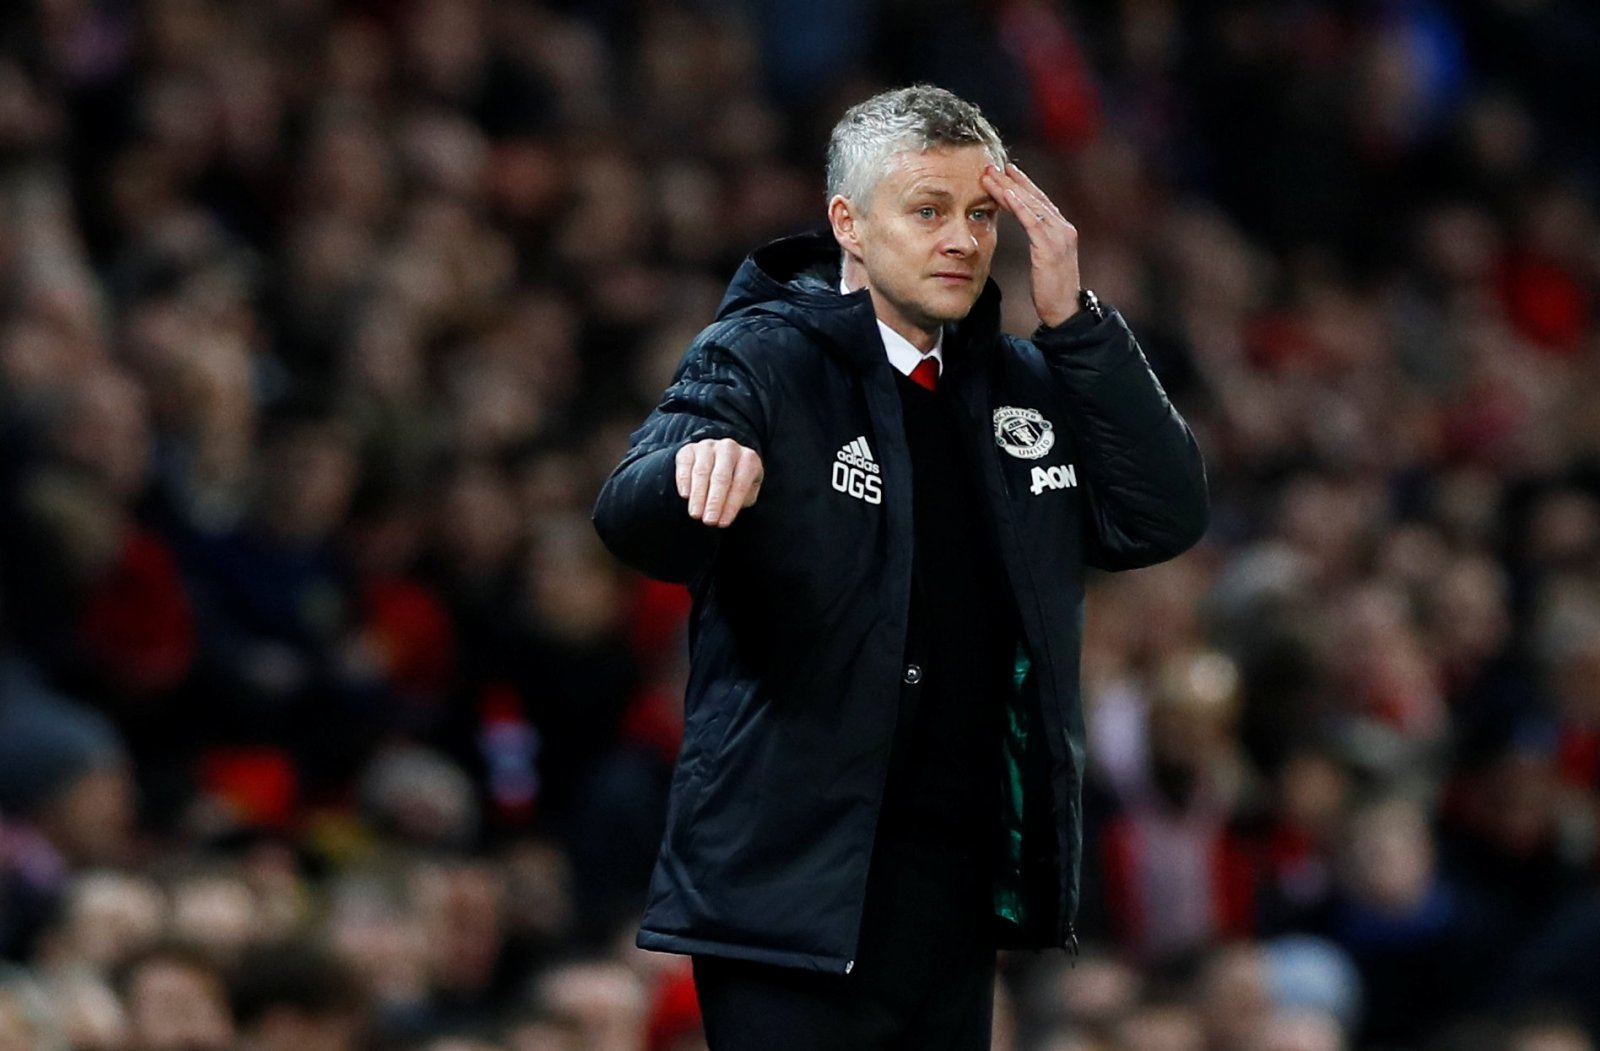 Man Utd already preparing for life after the end of Solskjaer's current contract